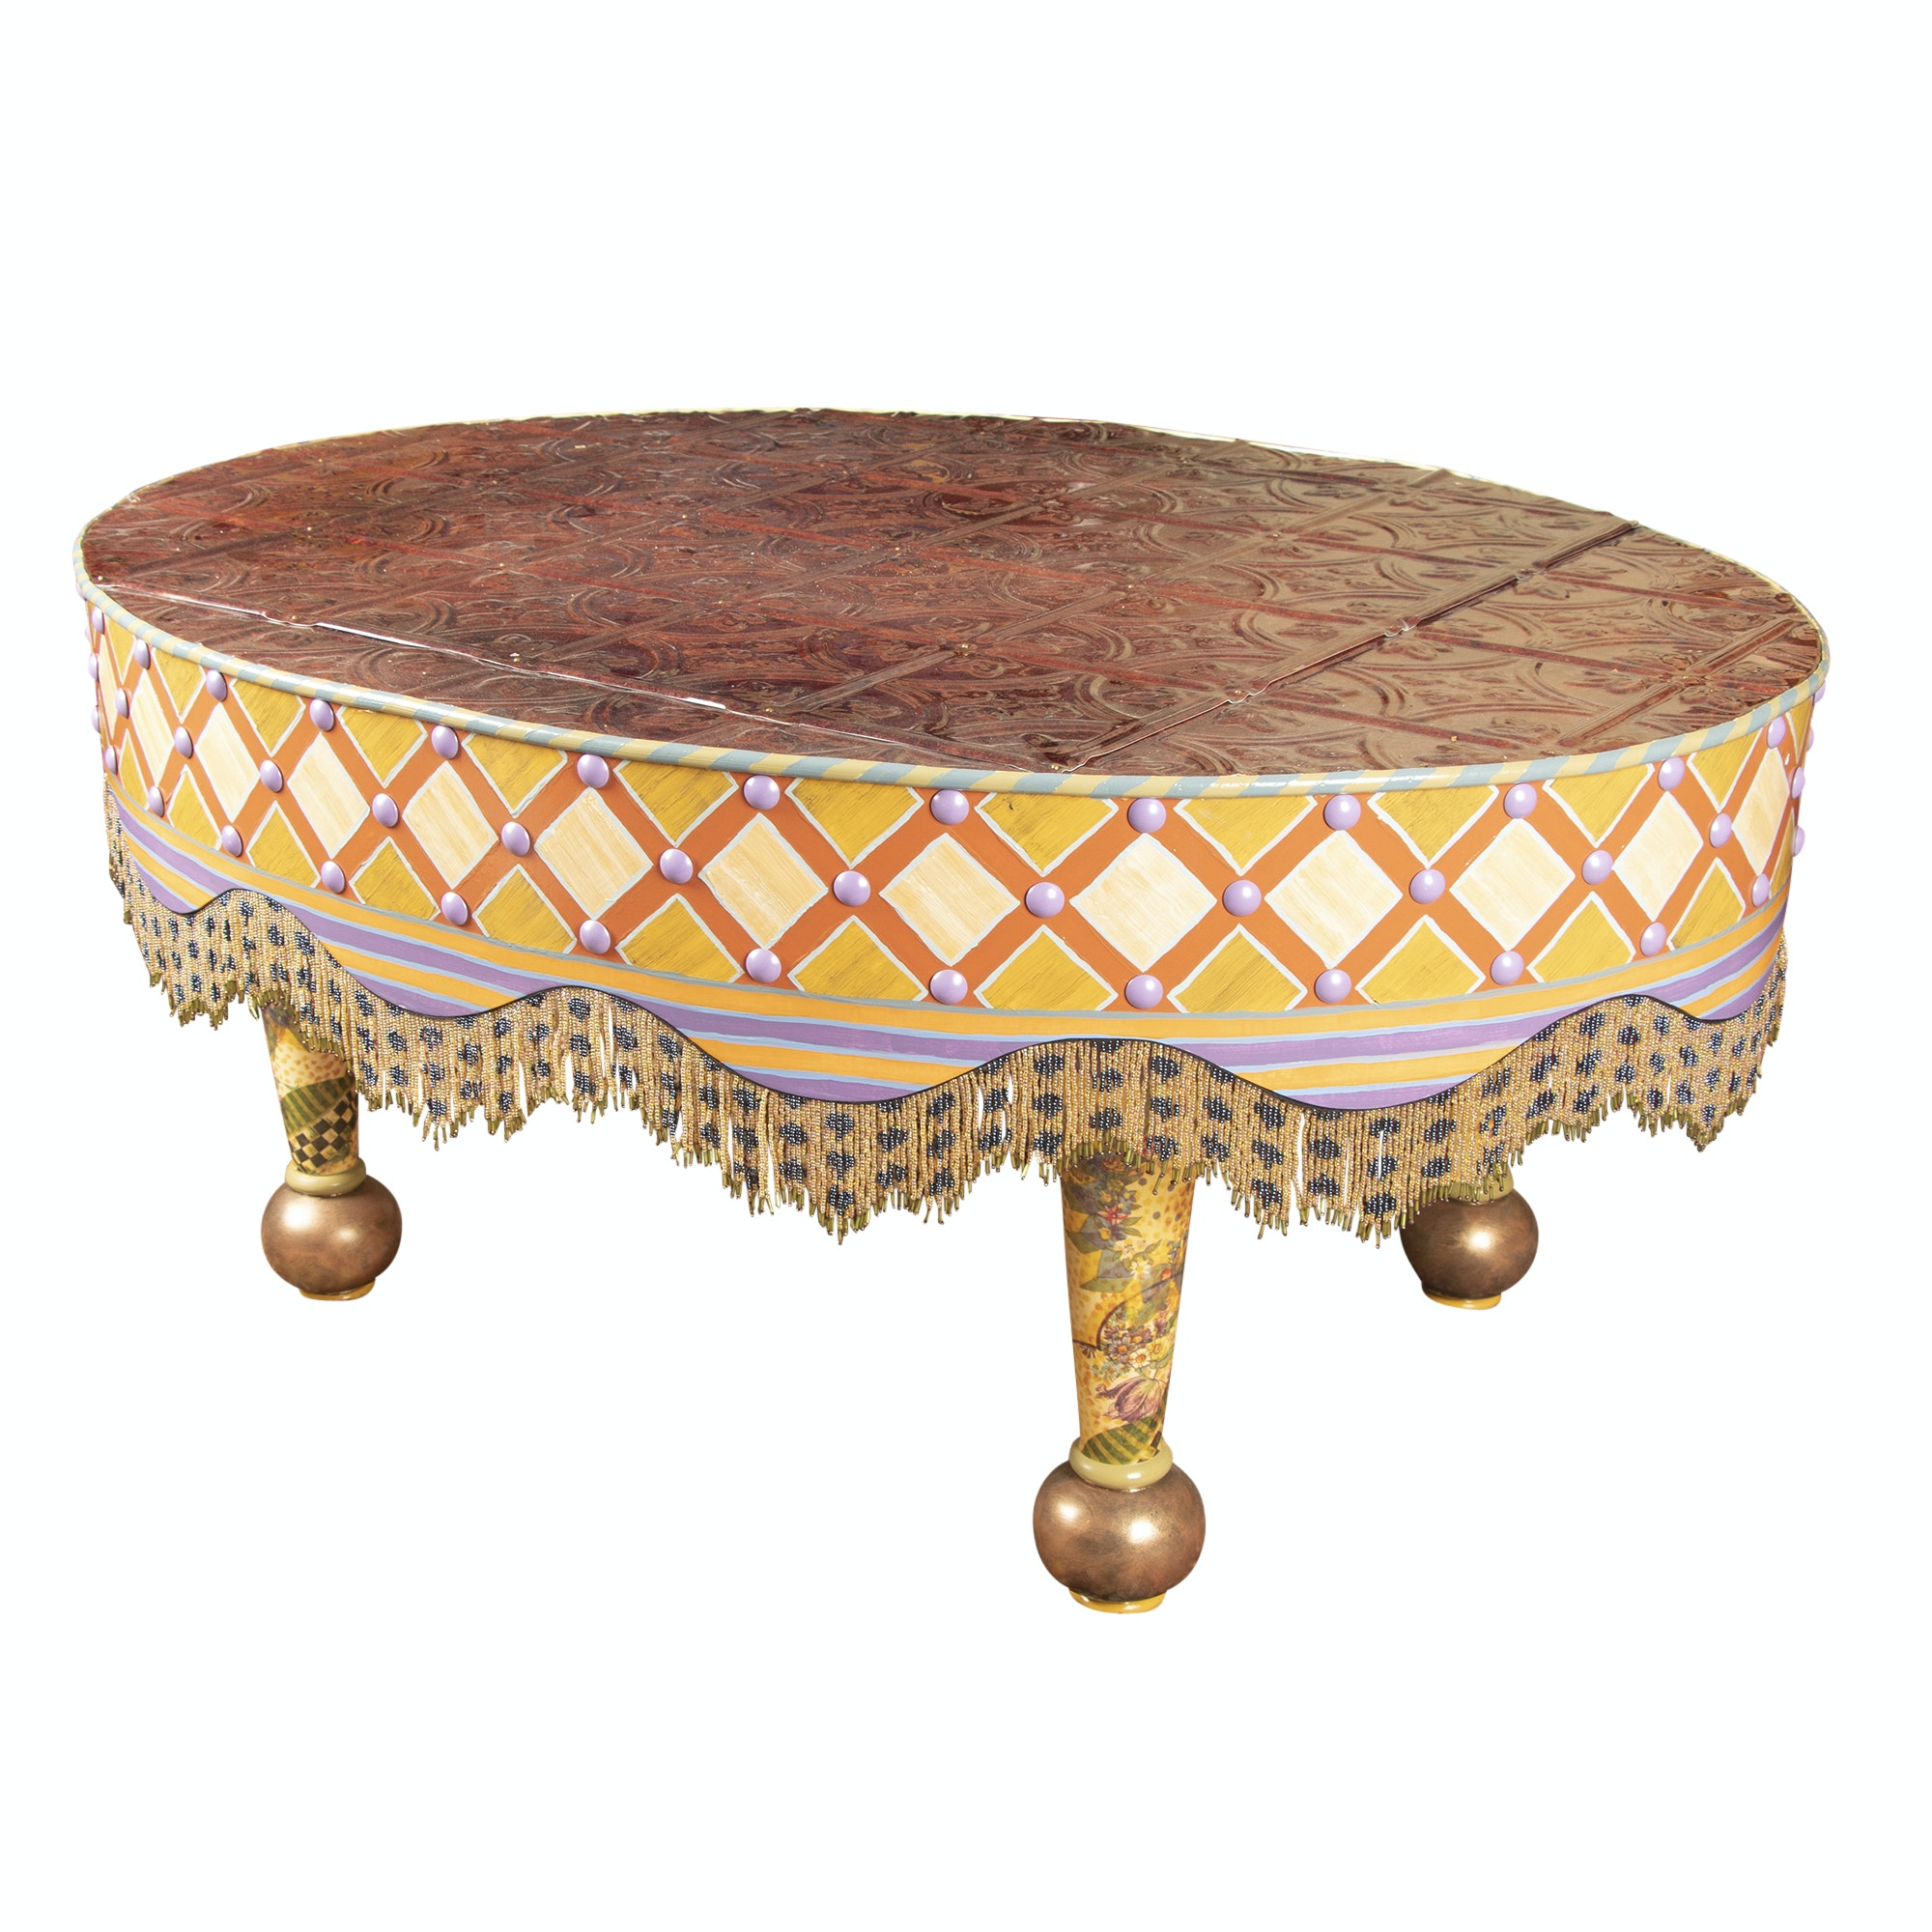 MacKenzie-Childs Hand-Painted Wooden Cocktail Table, 20th/21st Century